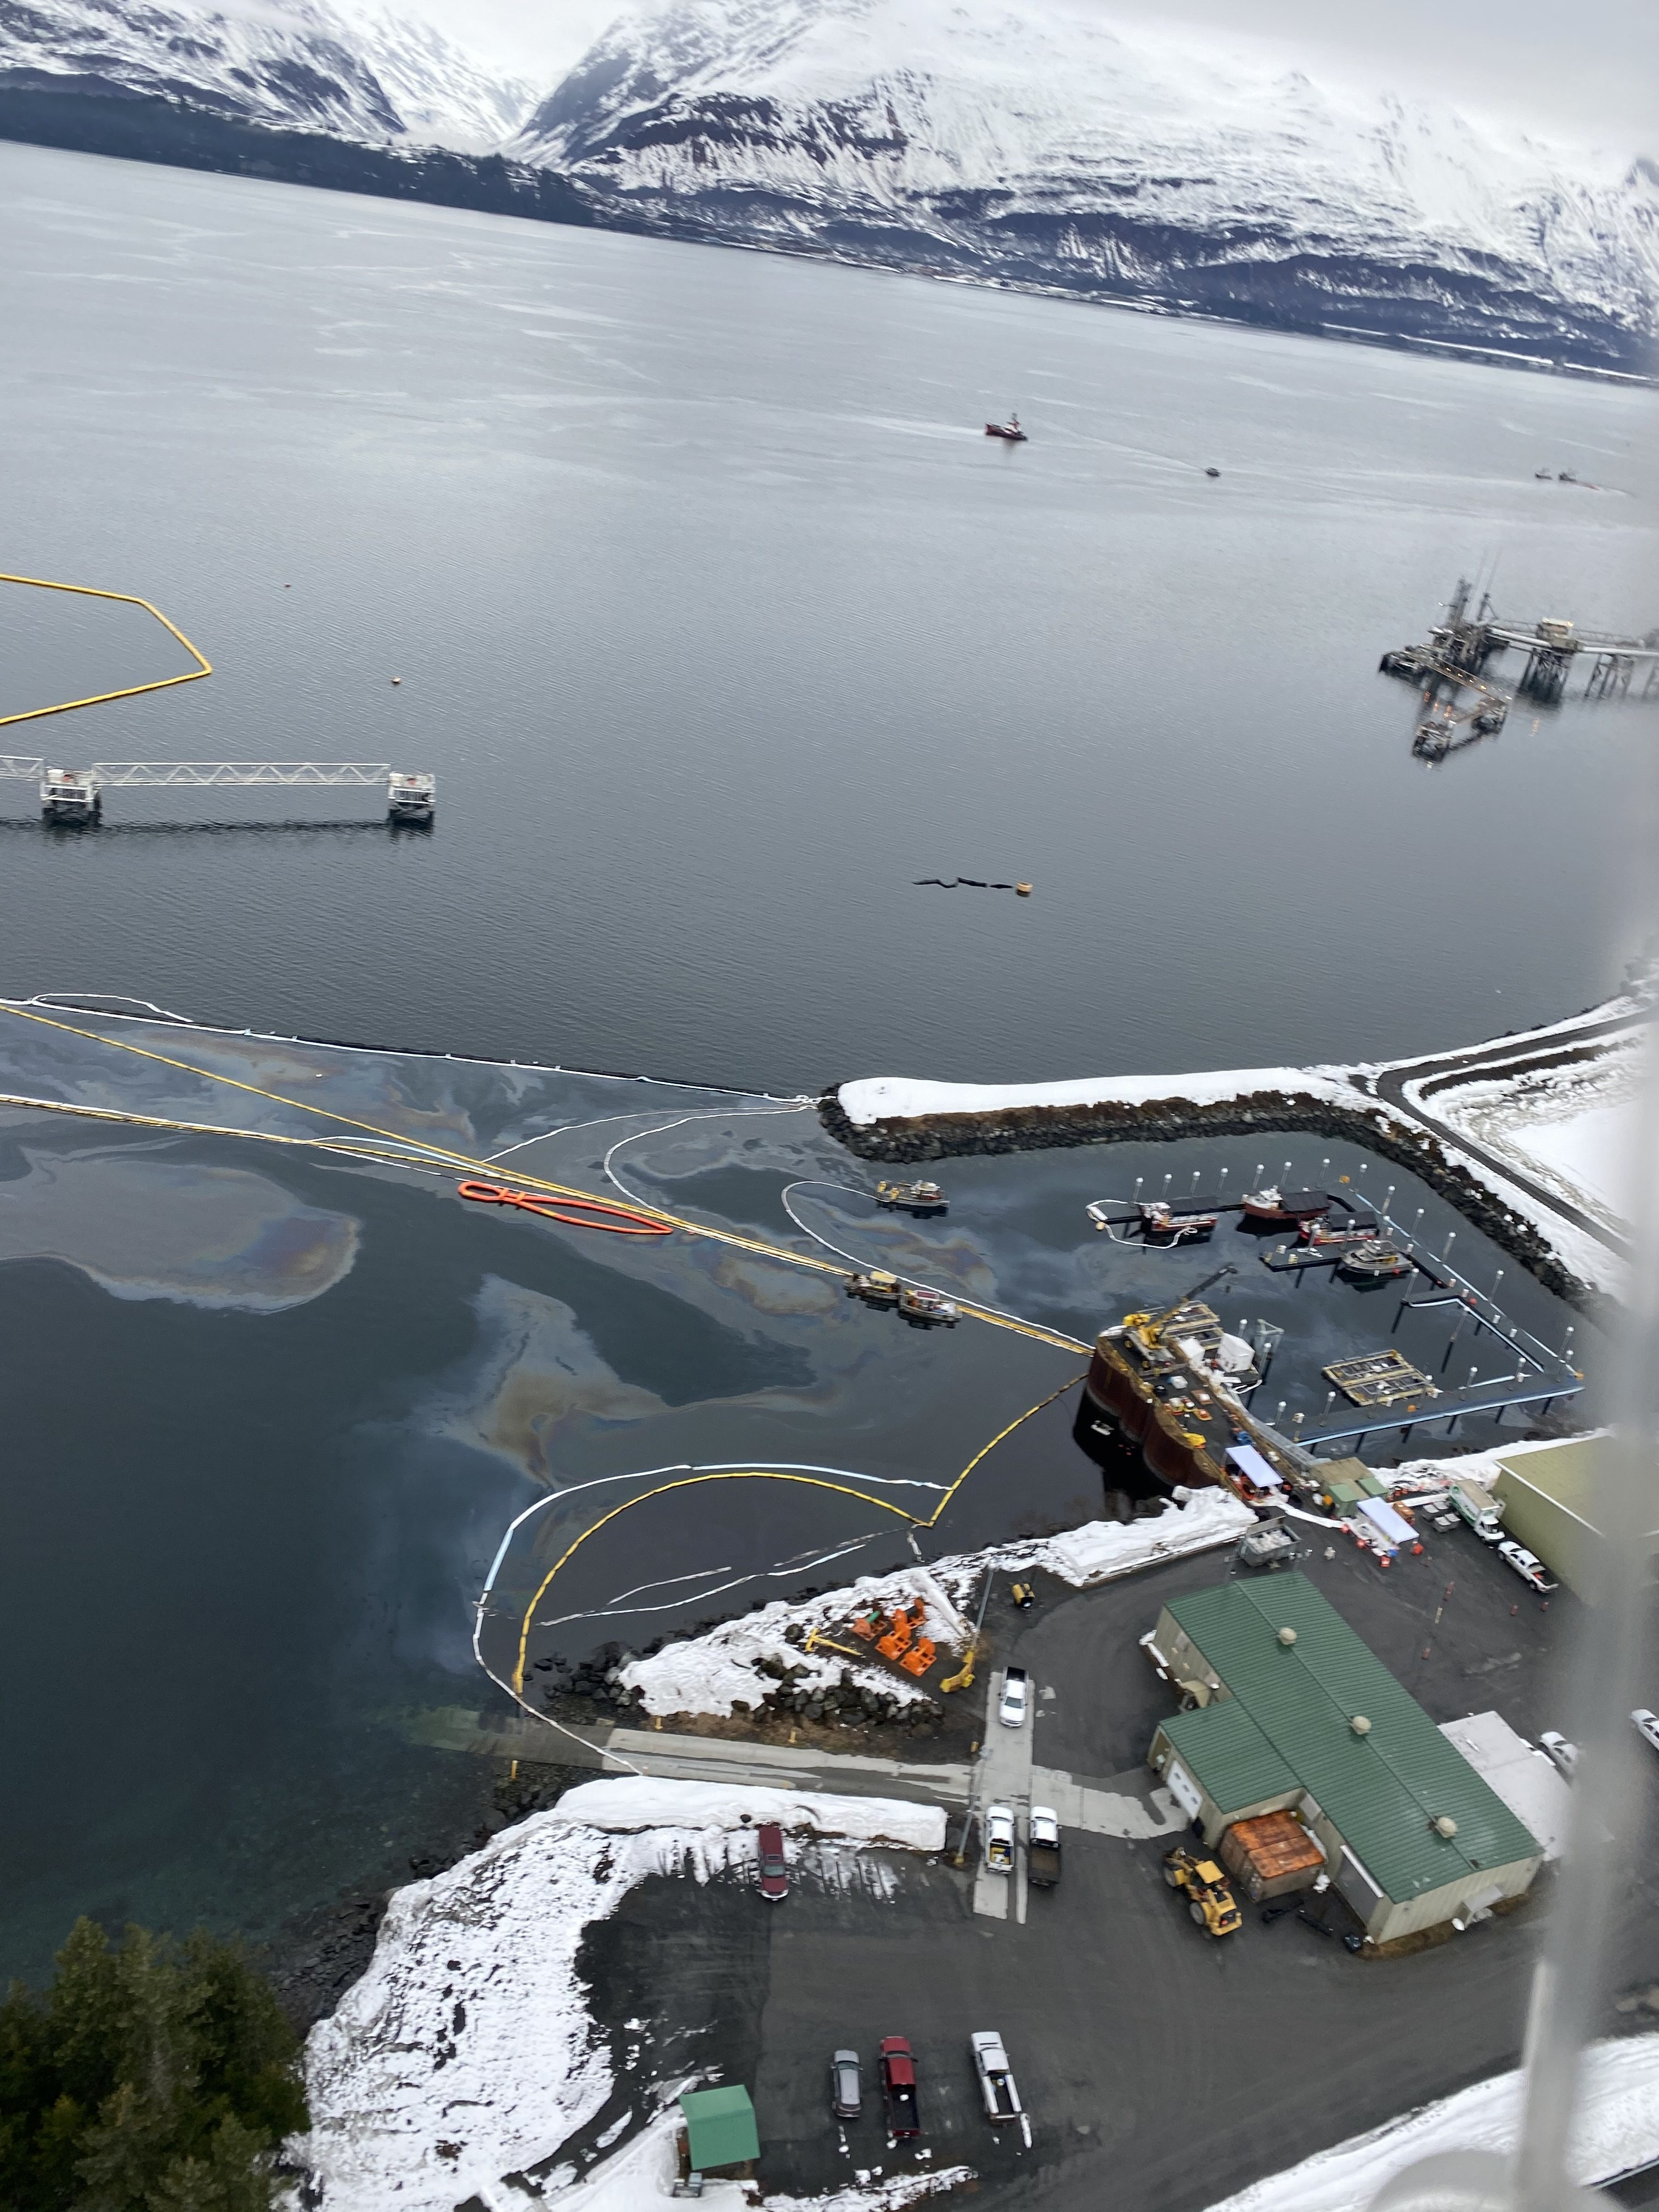 These photographs were taken during an overflight of the Valdez Marine Terminal on Wednesday, April 15.